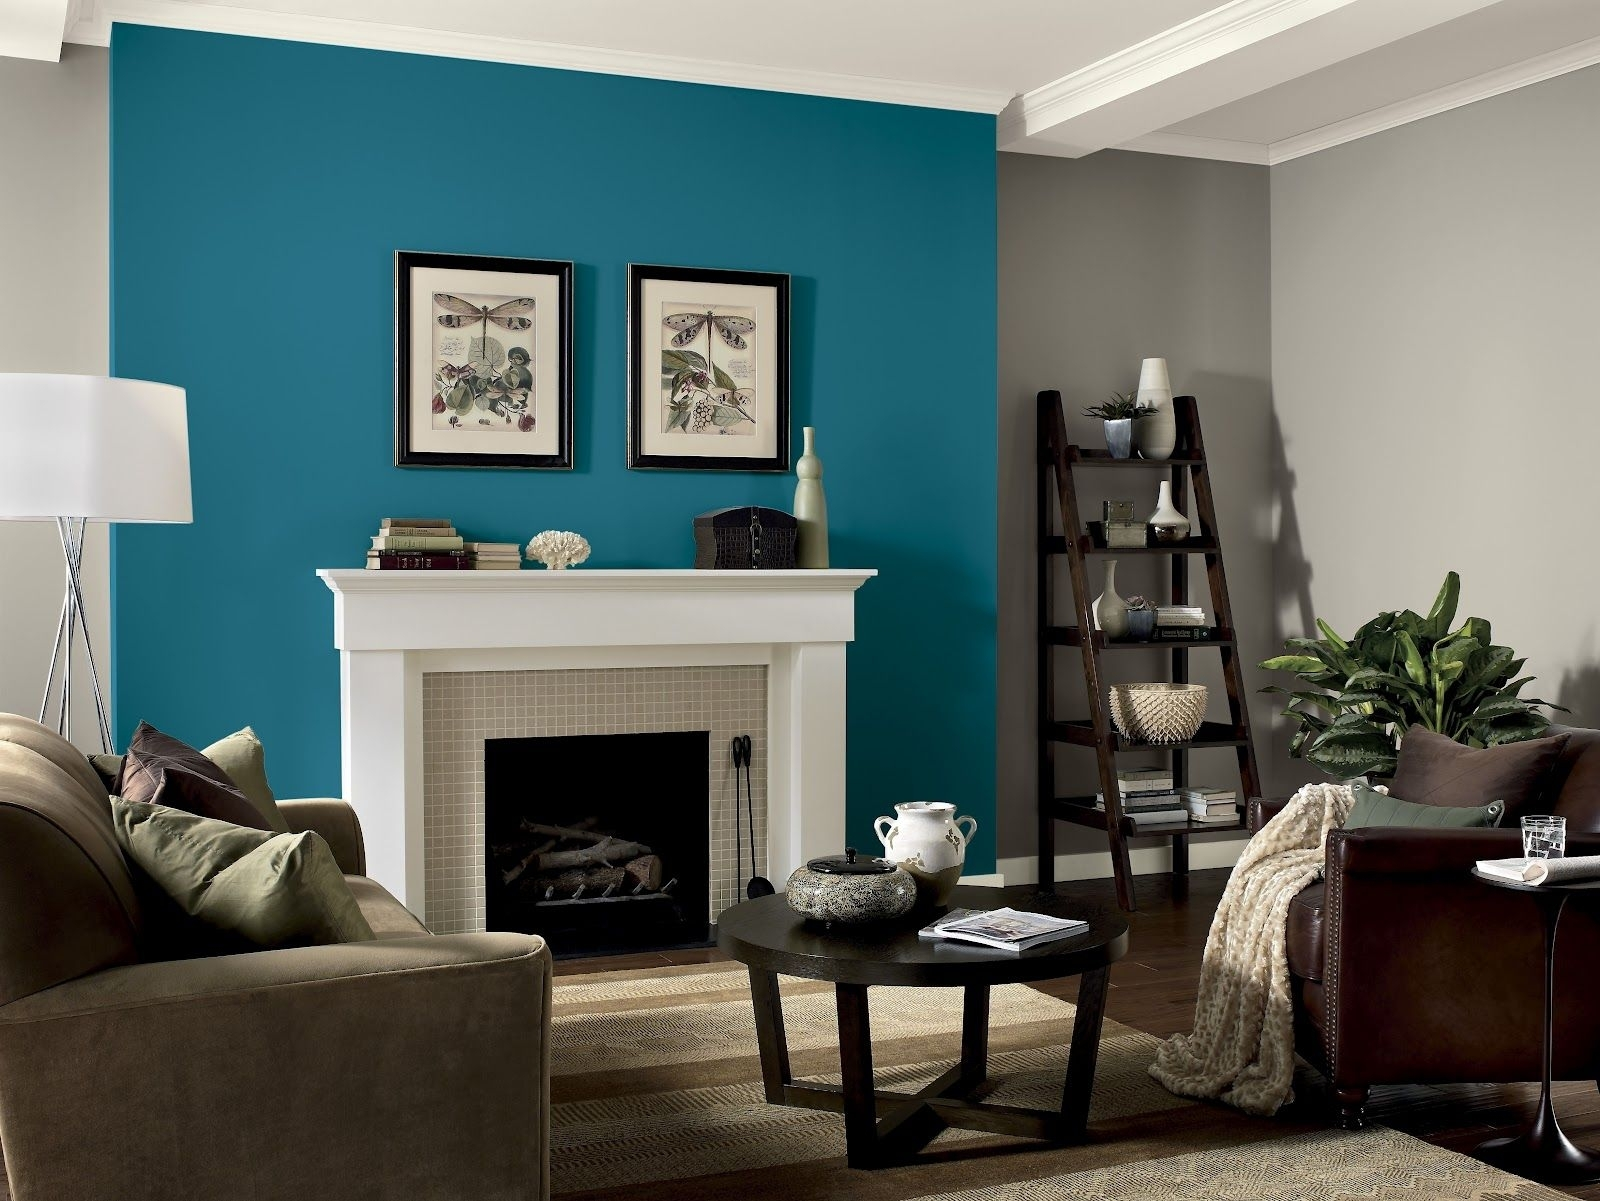 Day 30: Accent Walls | Black Accents, Barn Doors And Coca Cola For Most Recently Released Wall Accents For Blue Room (View 6 of 15)